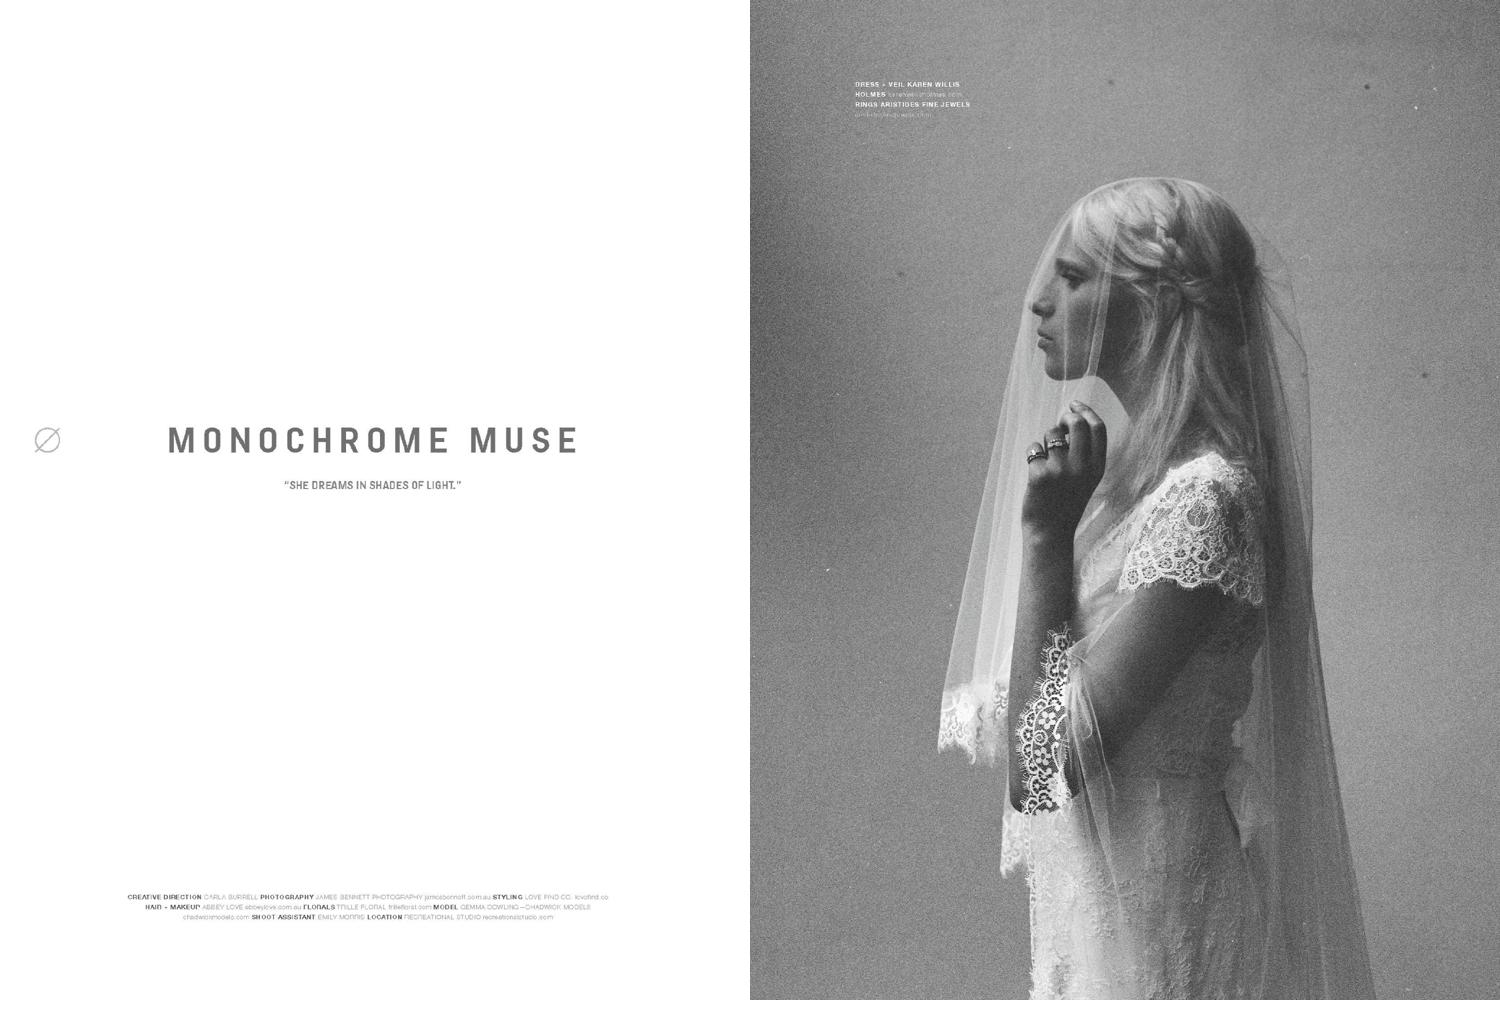 White_#35_Monochrome Muse_Page_01.jpg